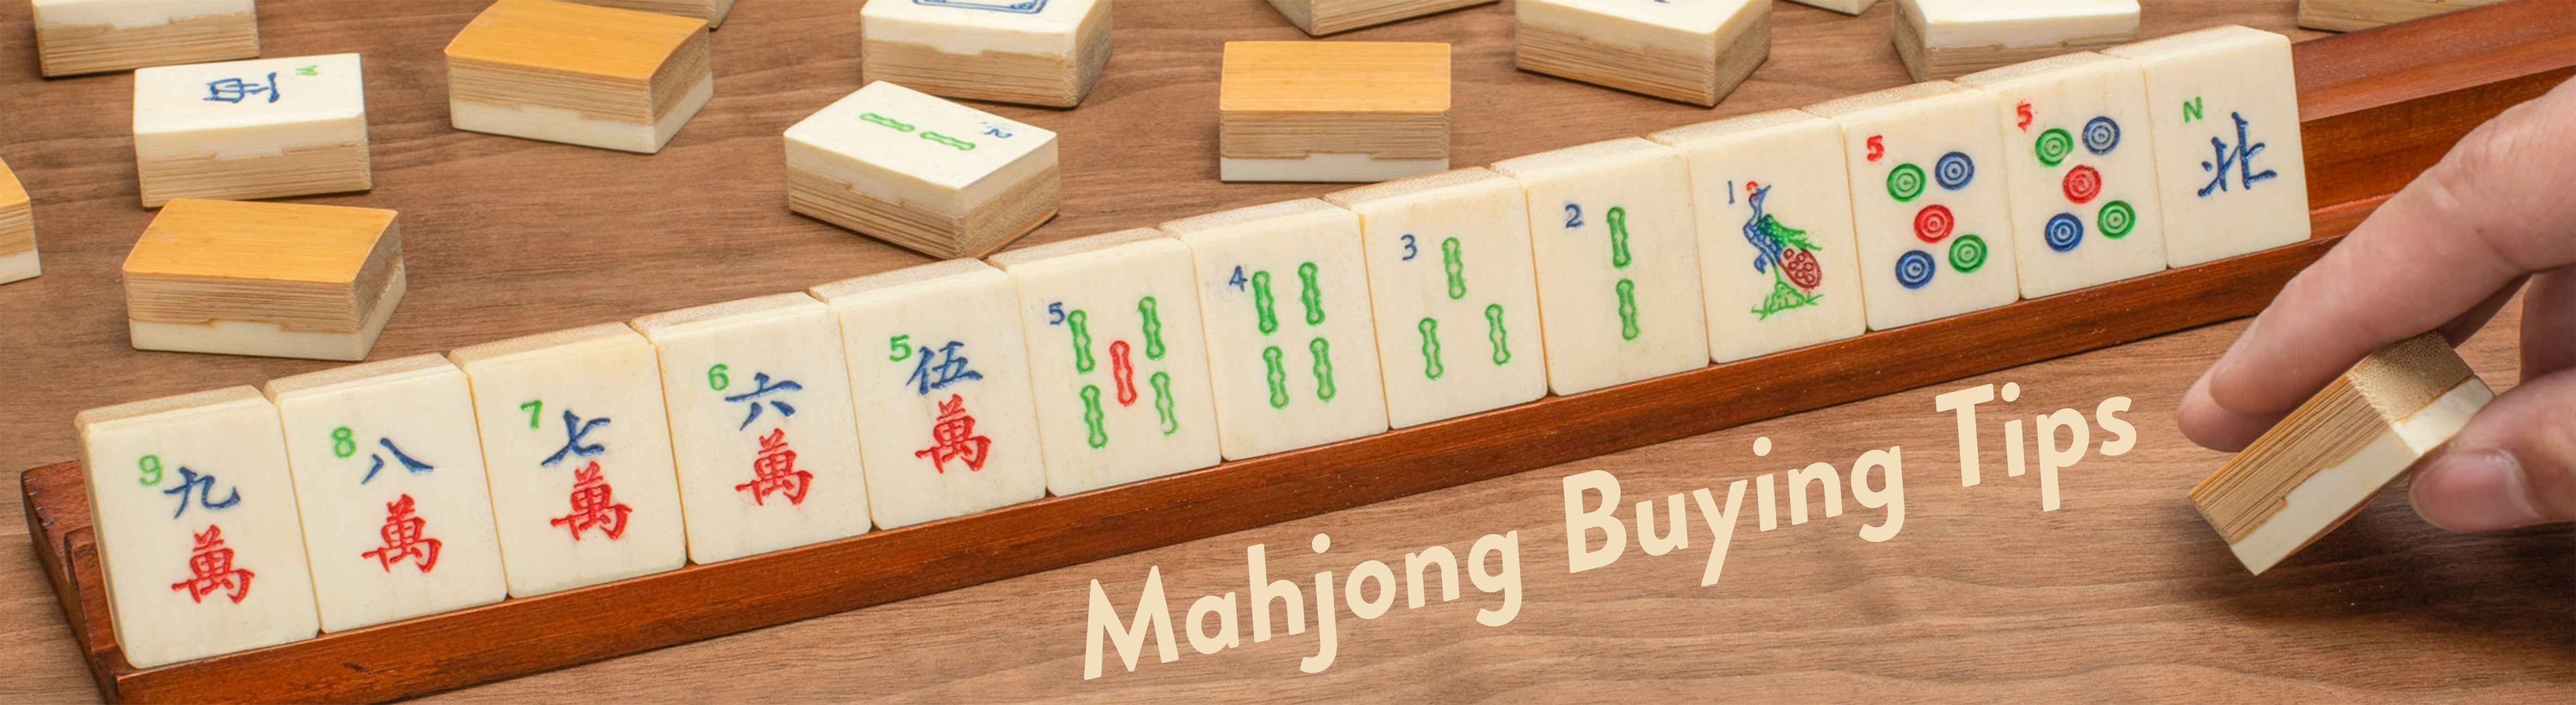 https://www.ymimports.com/pages/mahjong-buying-tips